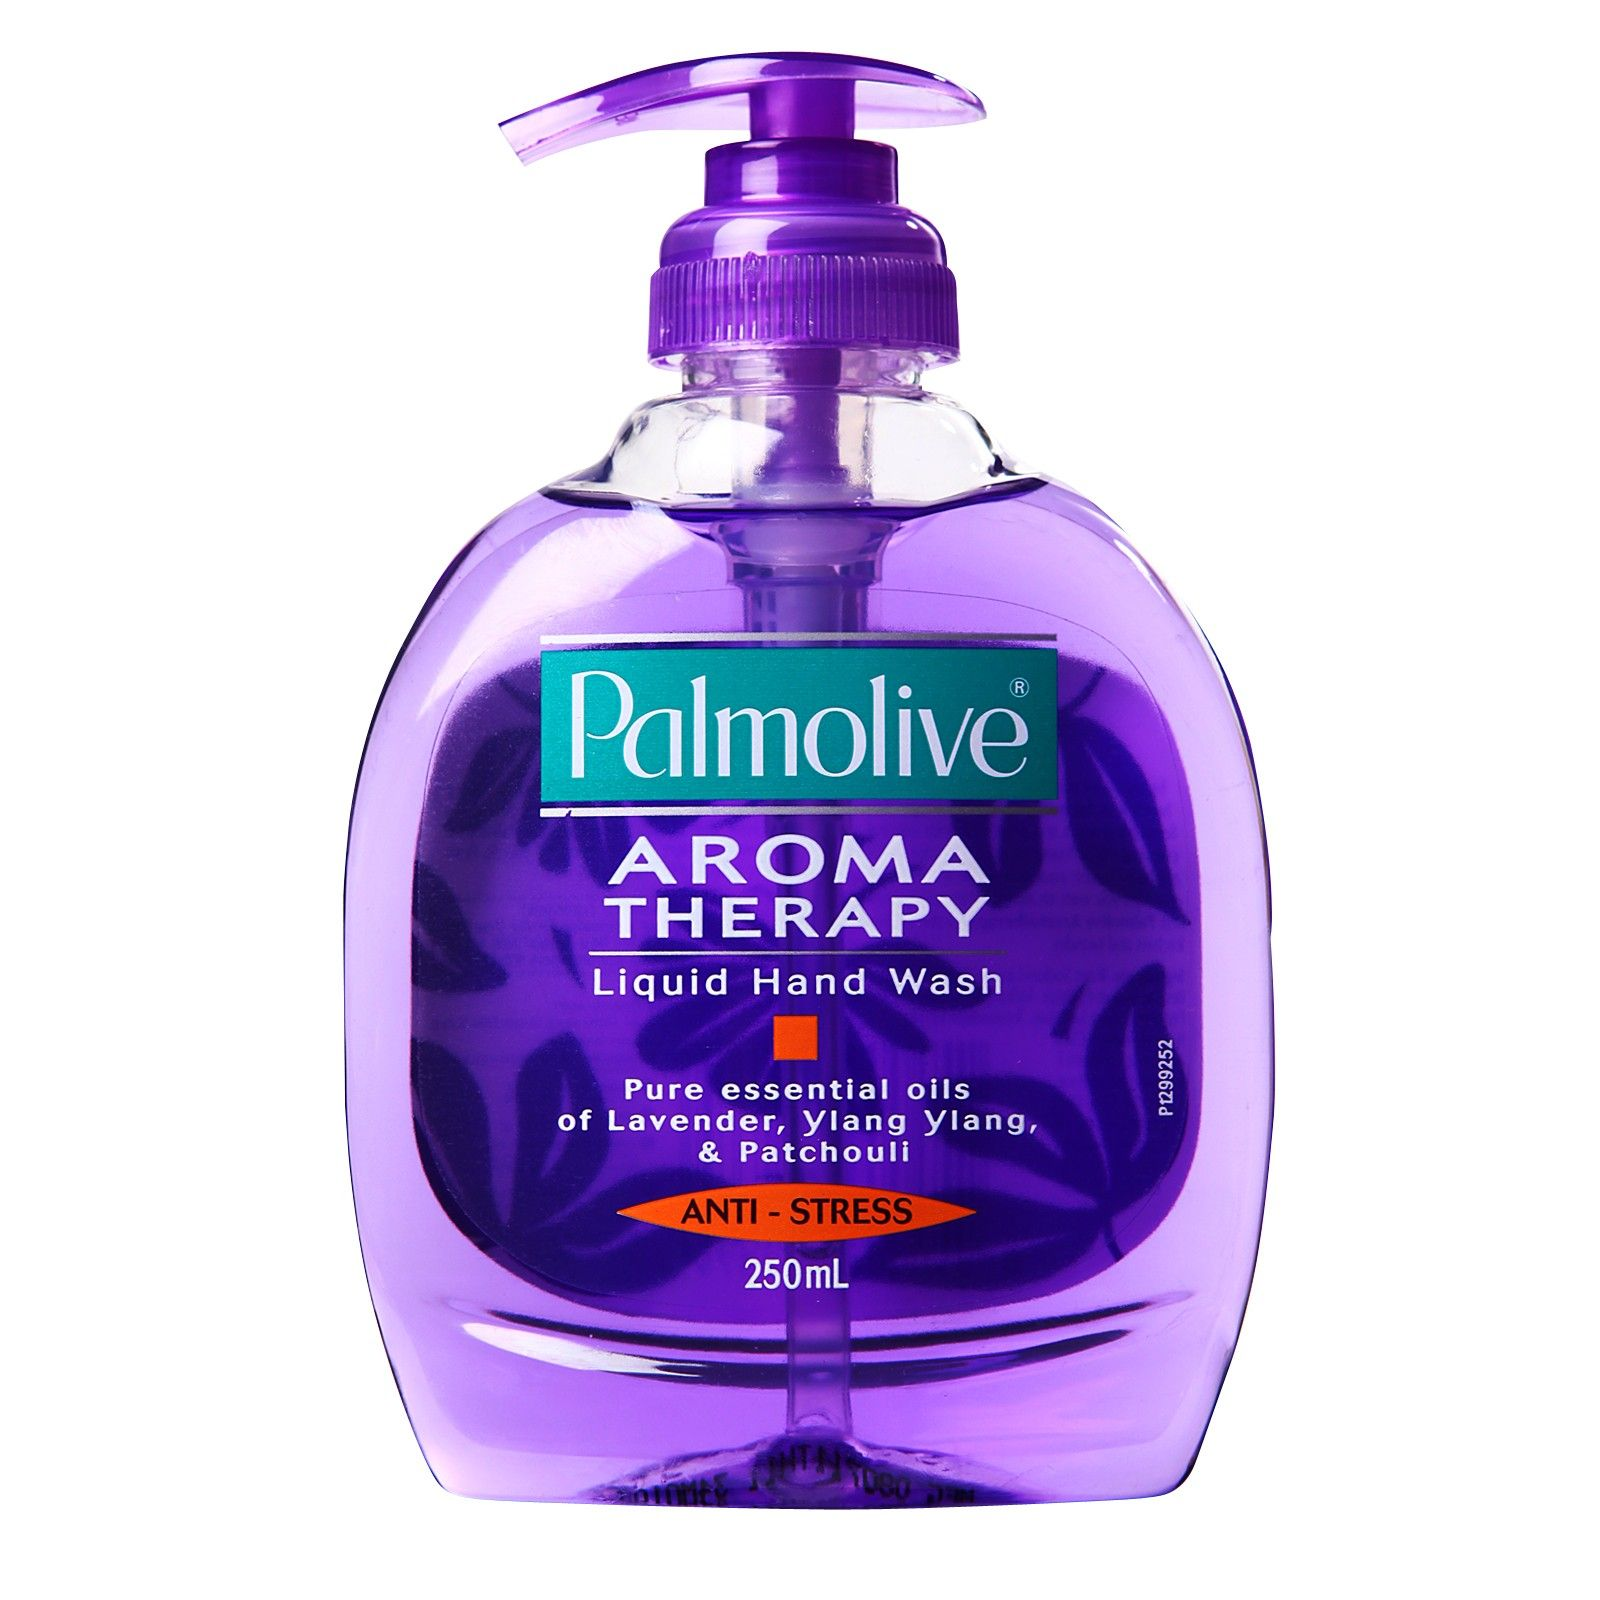 Palmolive Aroma Therapy Anti Stress Liquid Hand Wash Redmart